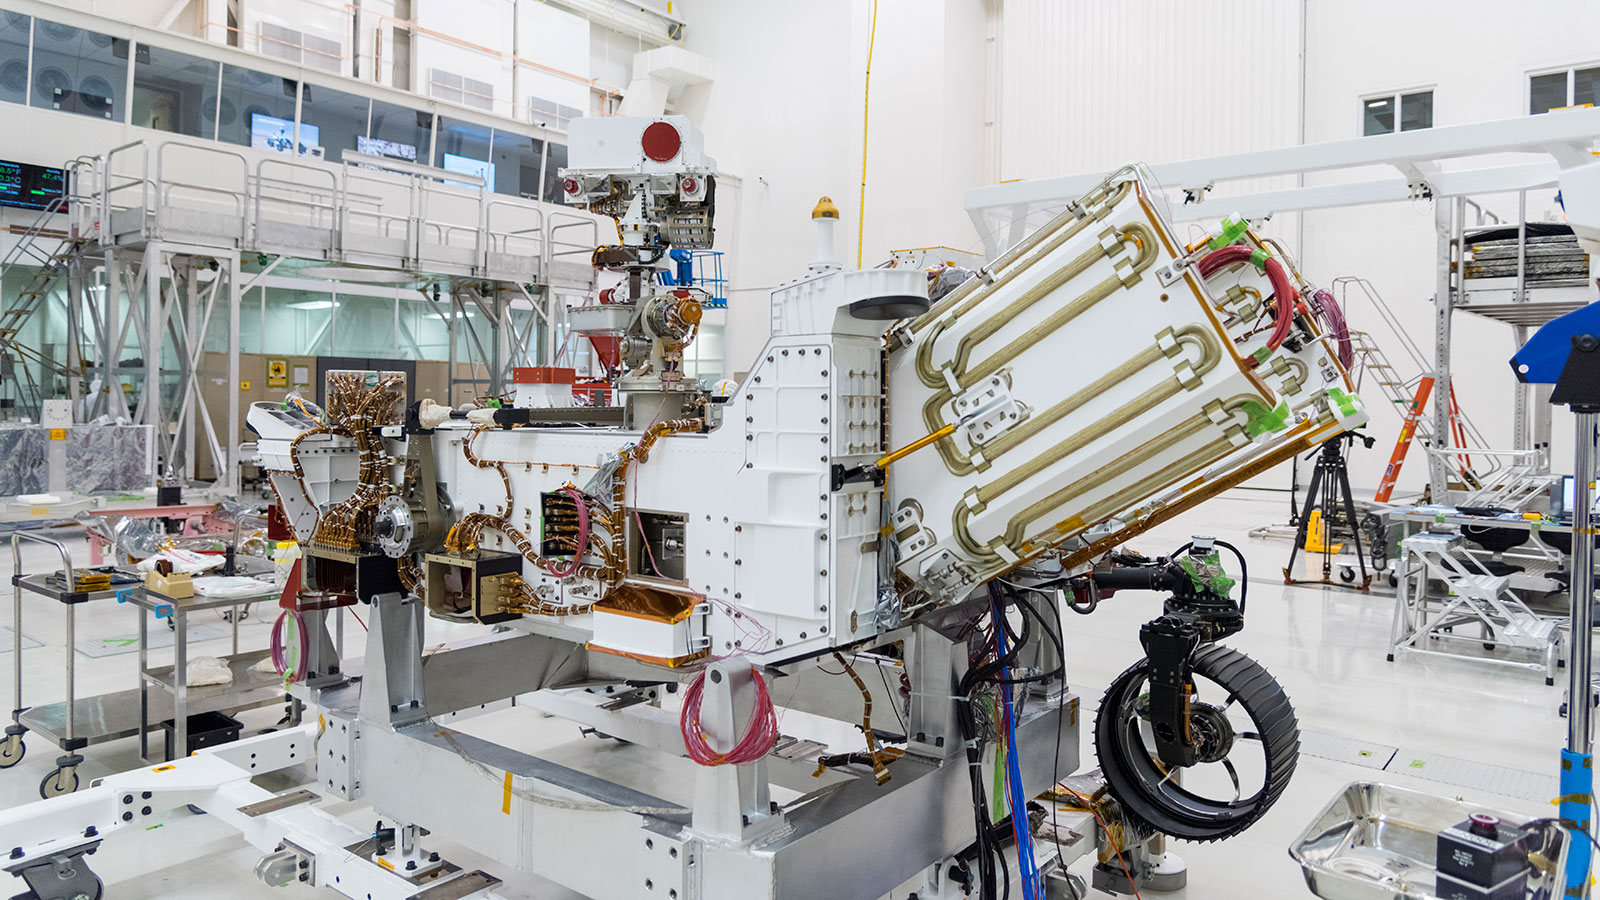 NASA's Perseverance Mars rover displaying where its MMRTG would be inserted, between the panels on the right marked by gold tube, before the power system was inserted.